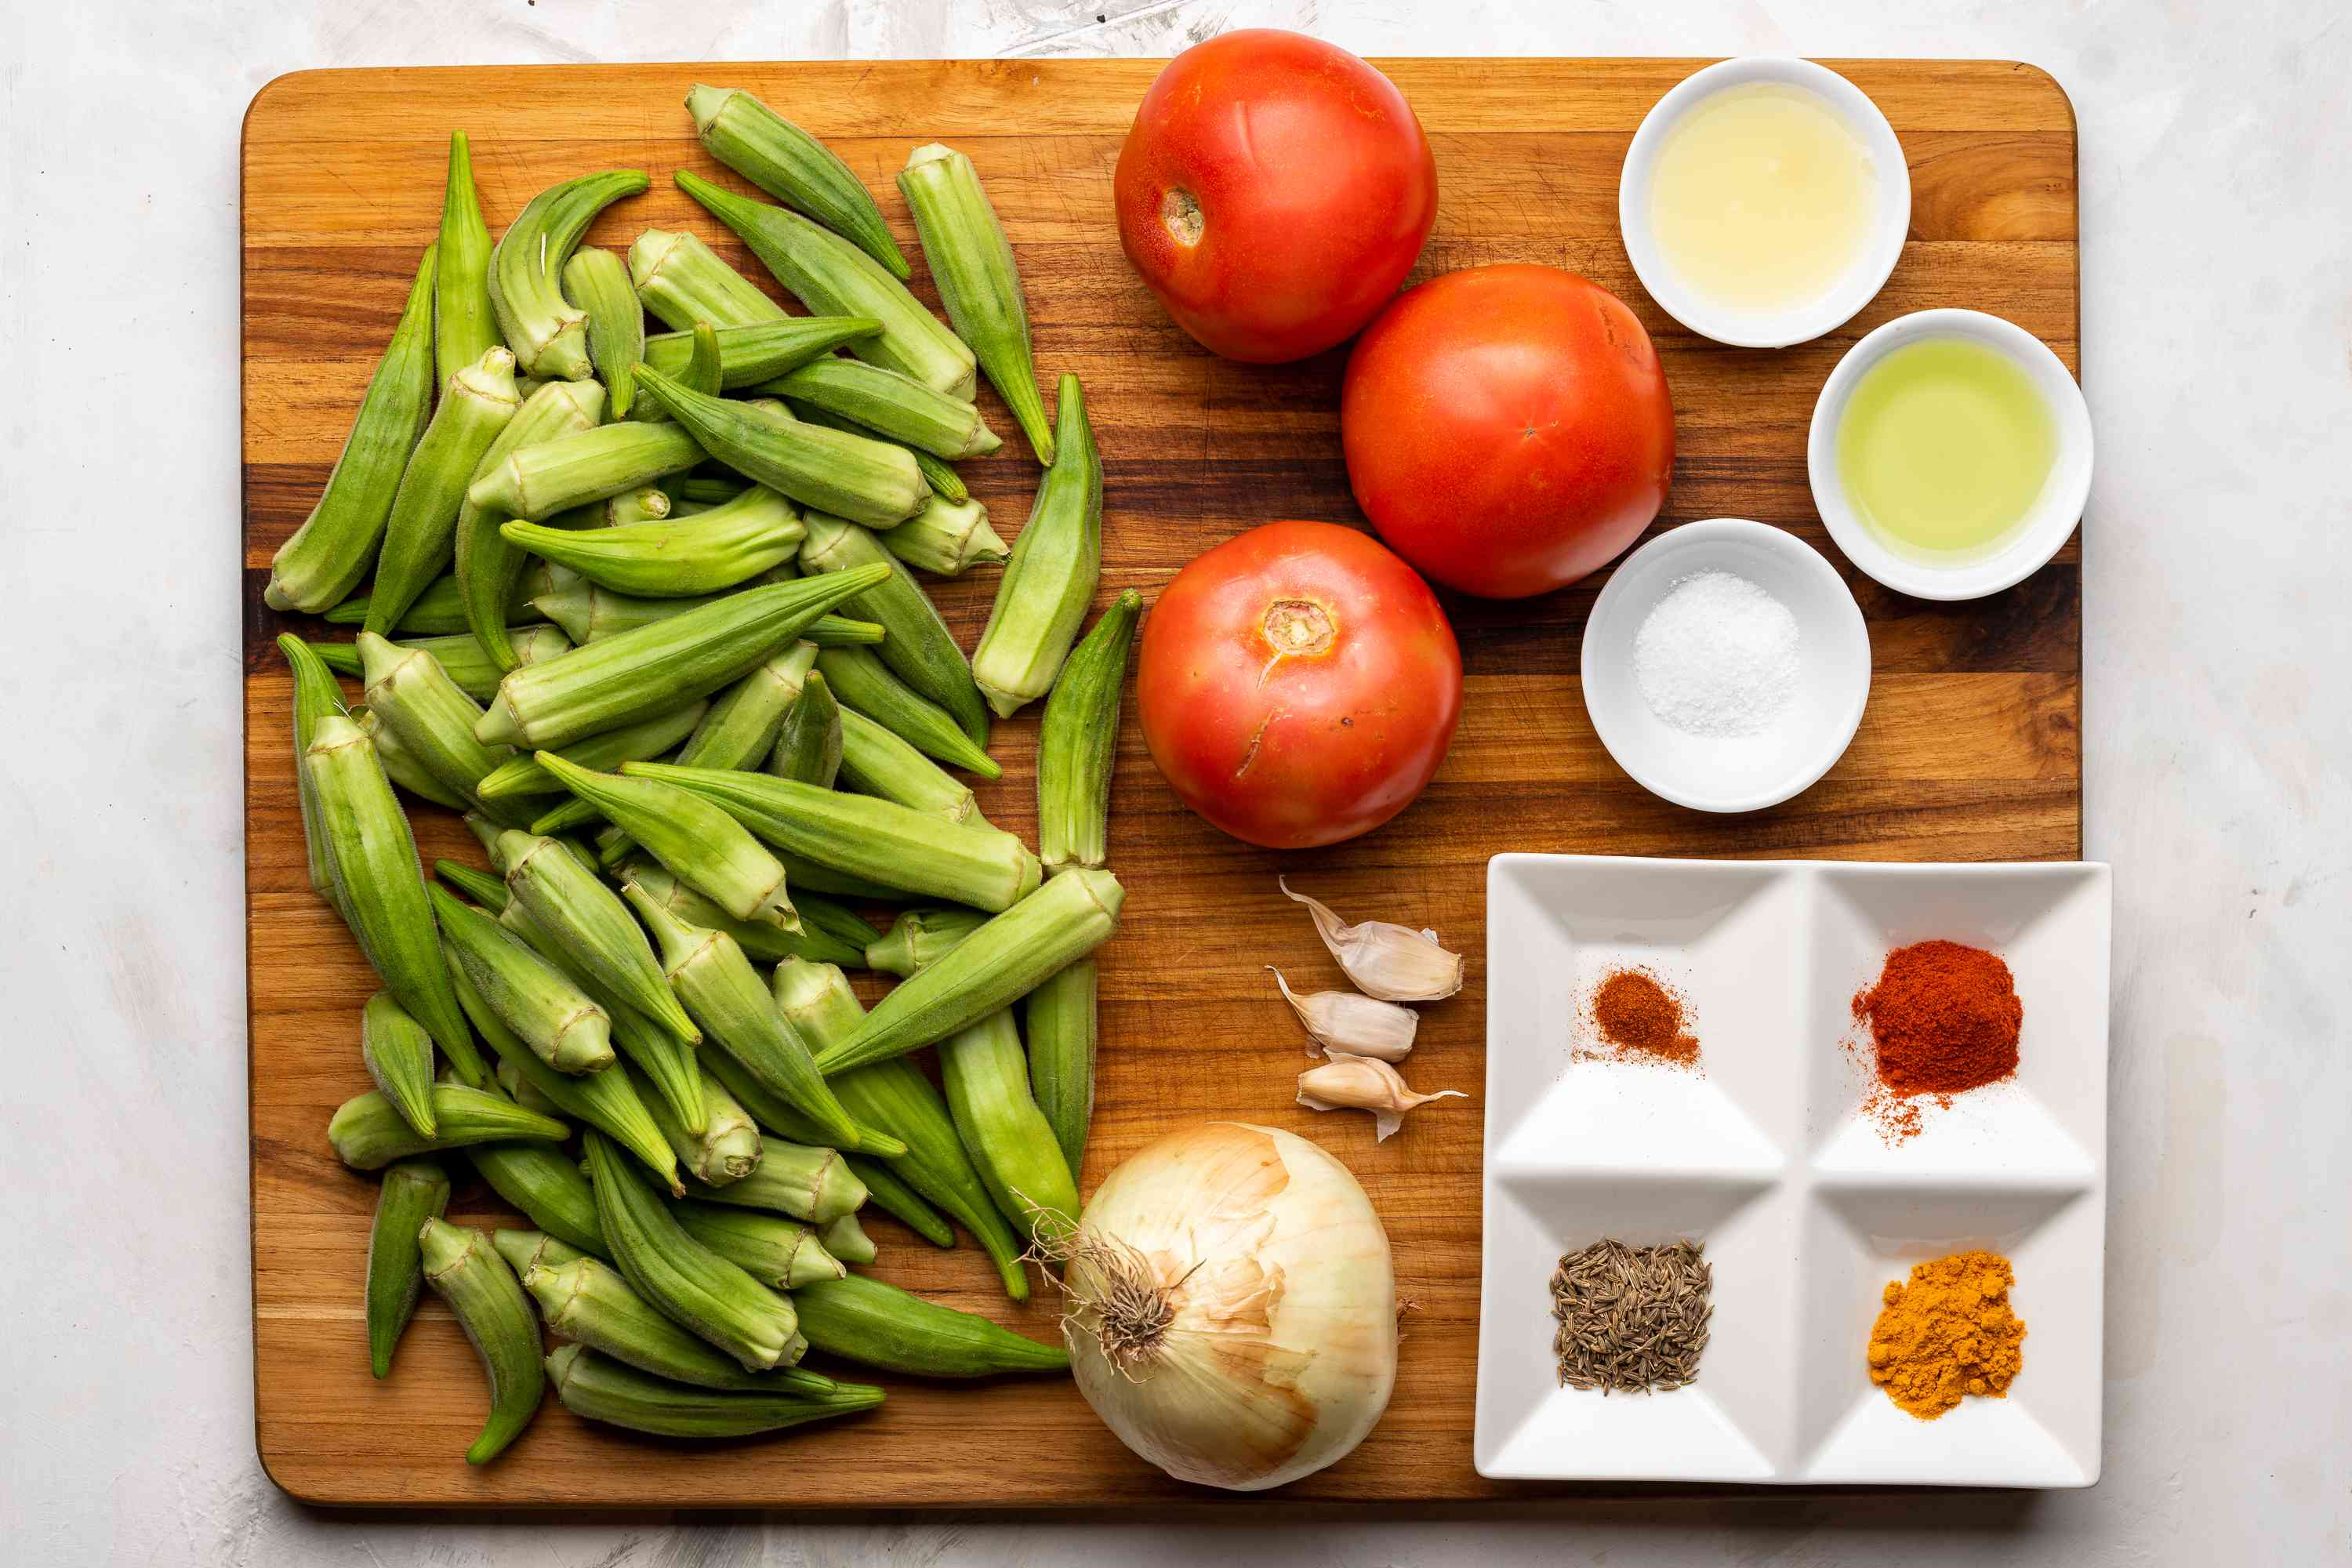 Spicy Okra and Tomatoes ingredients